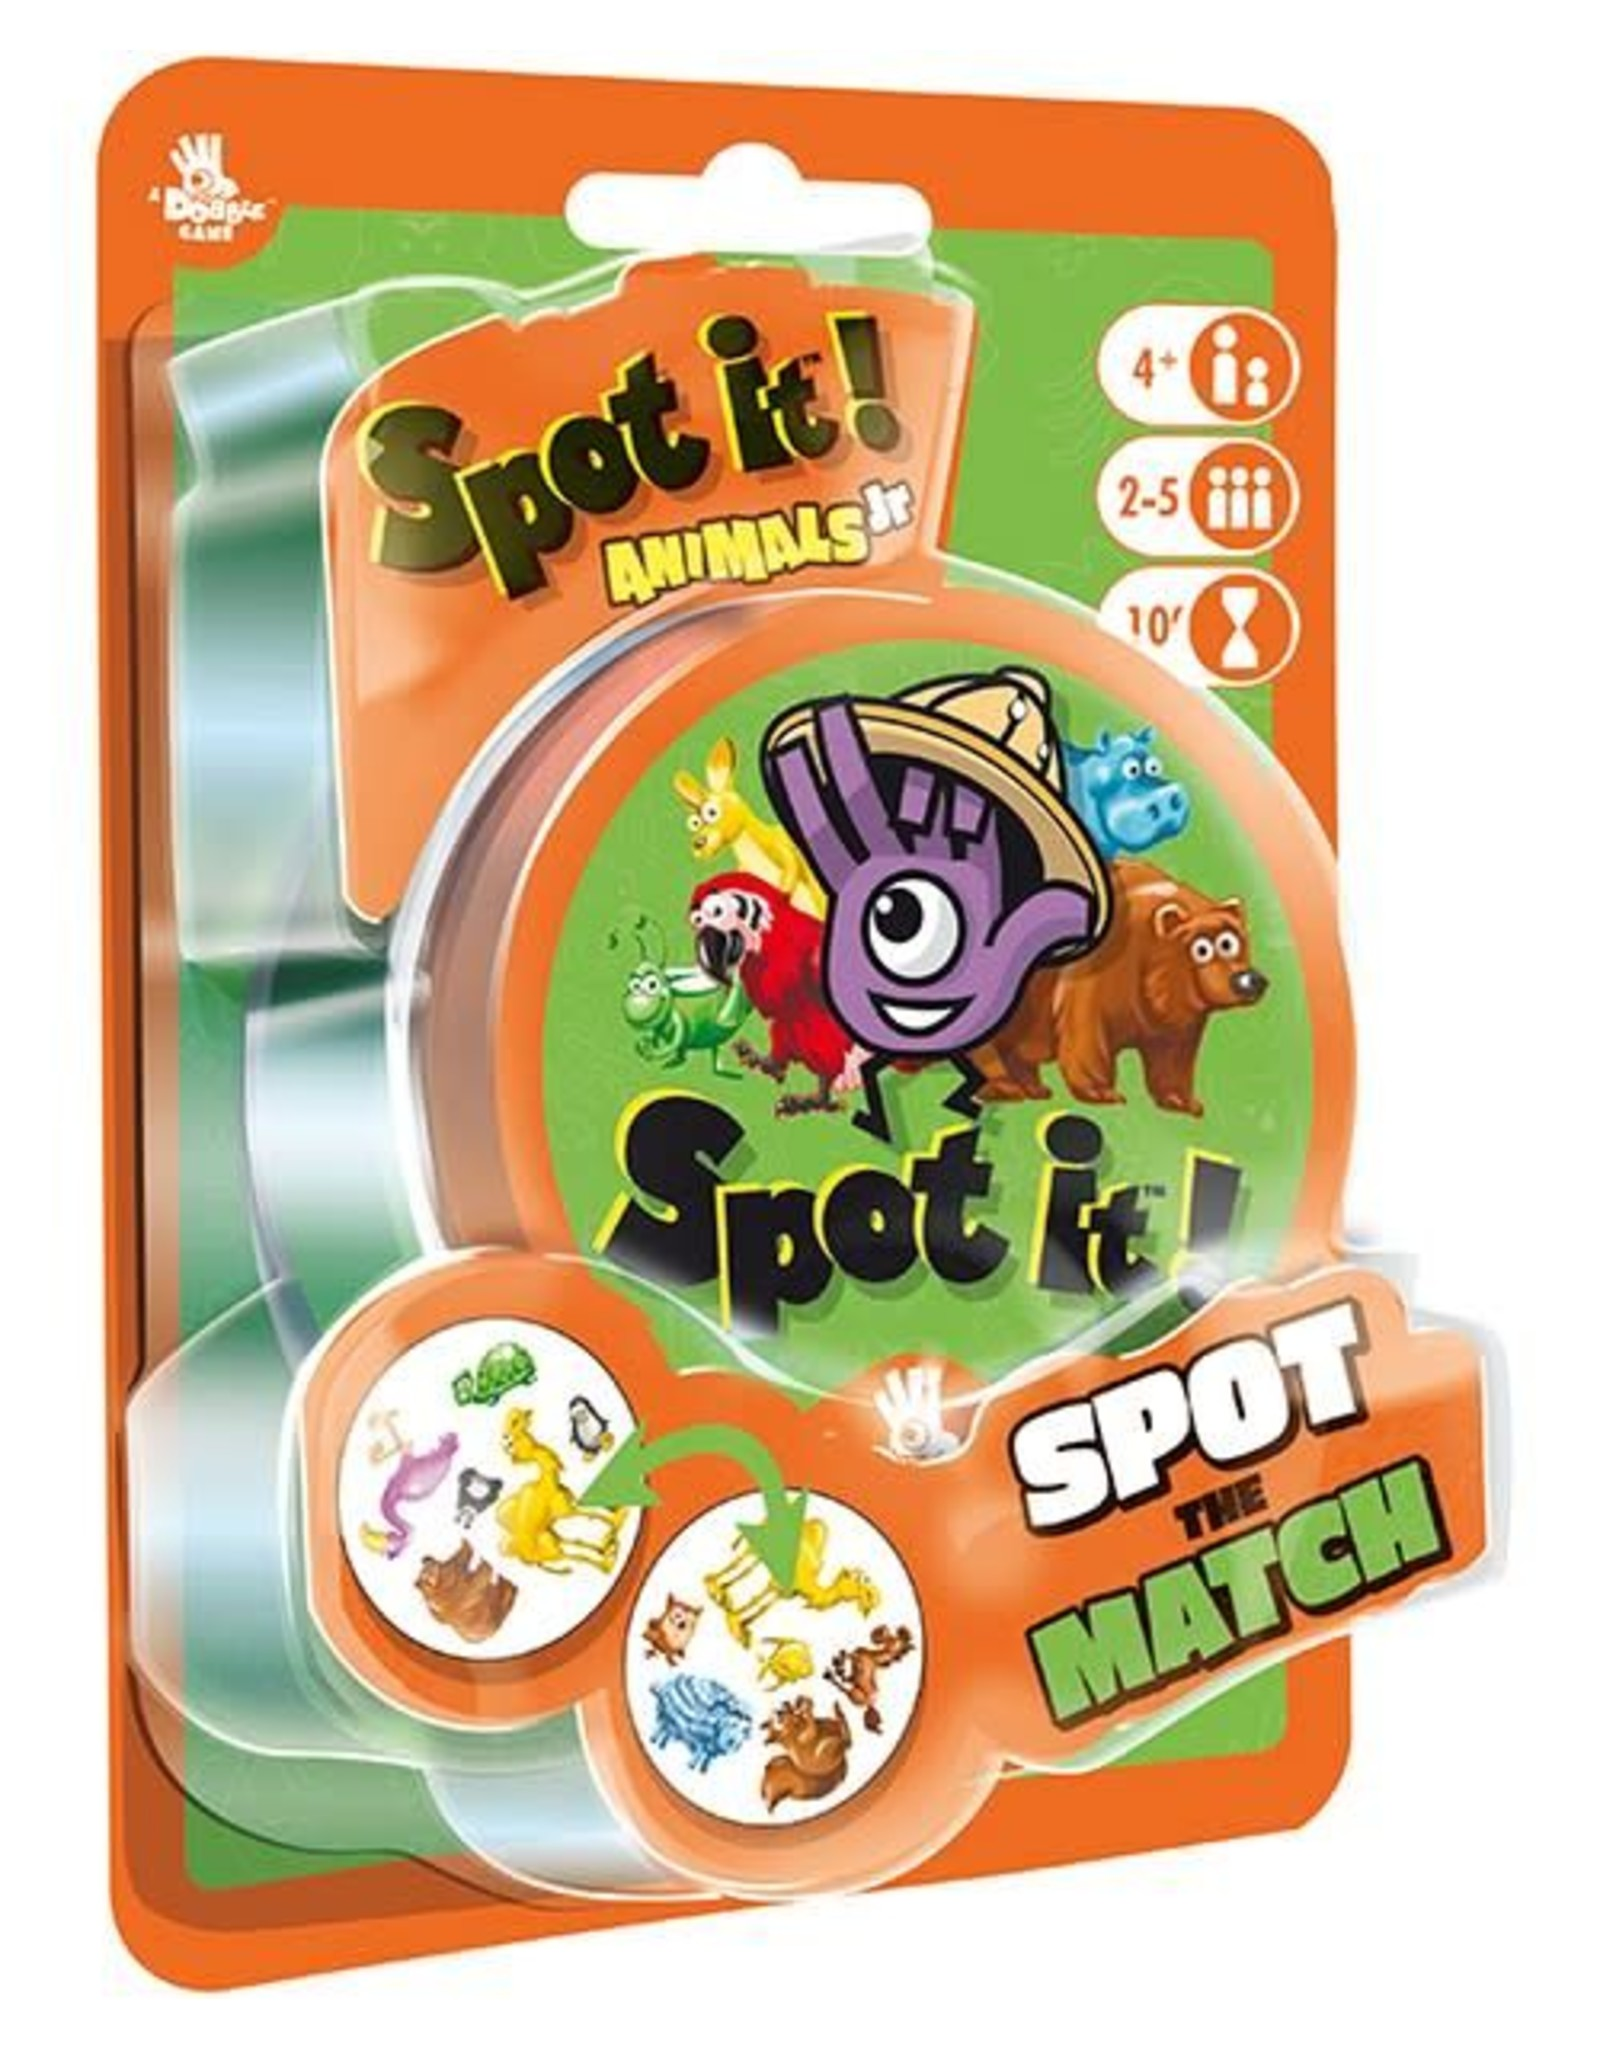 Spot it - Dobble Animal Jr